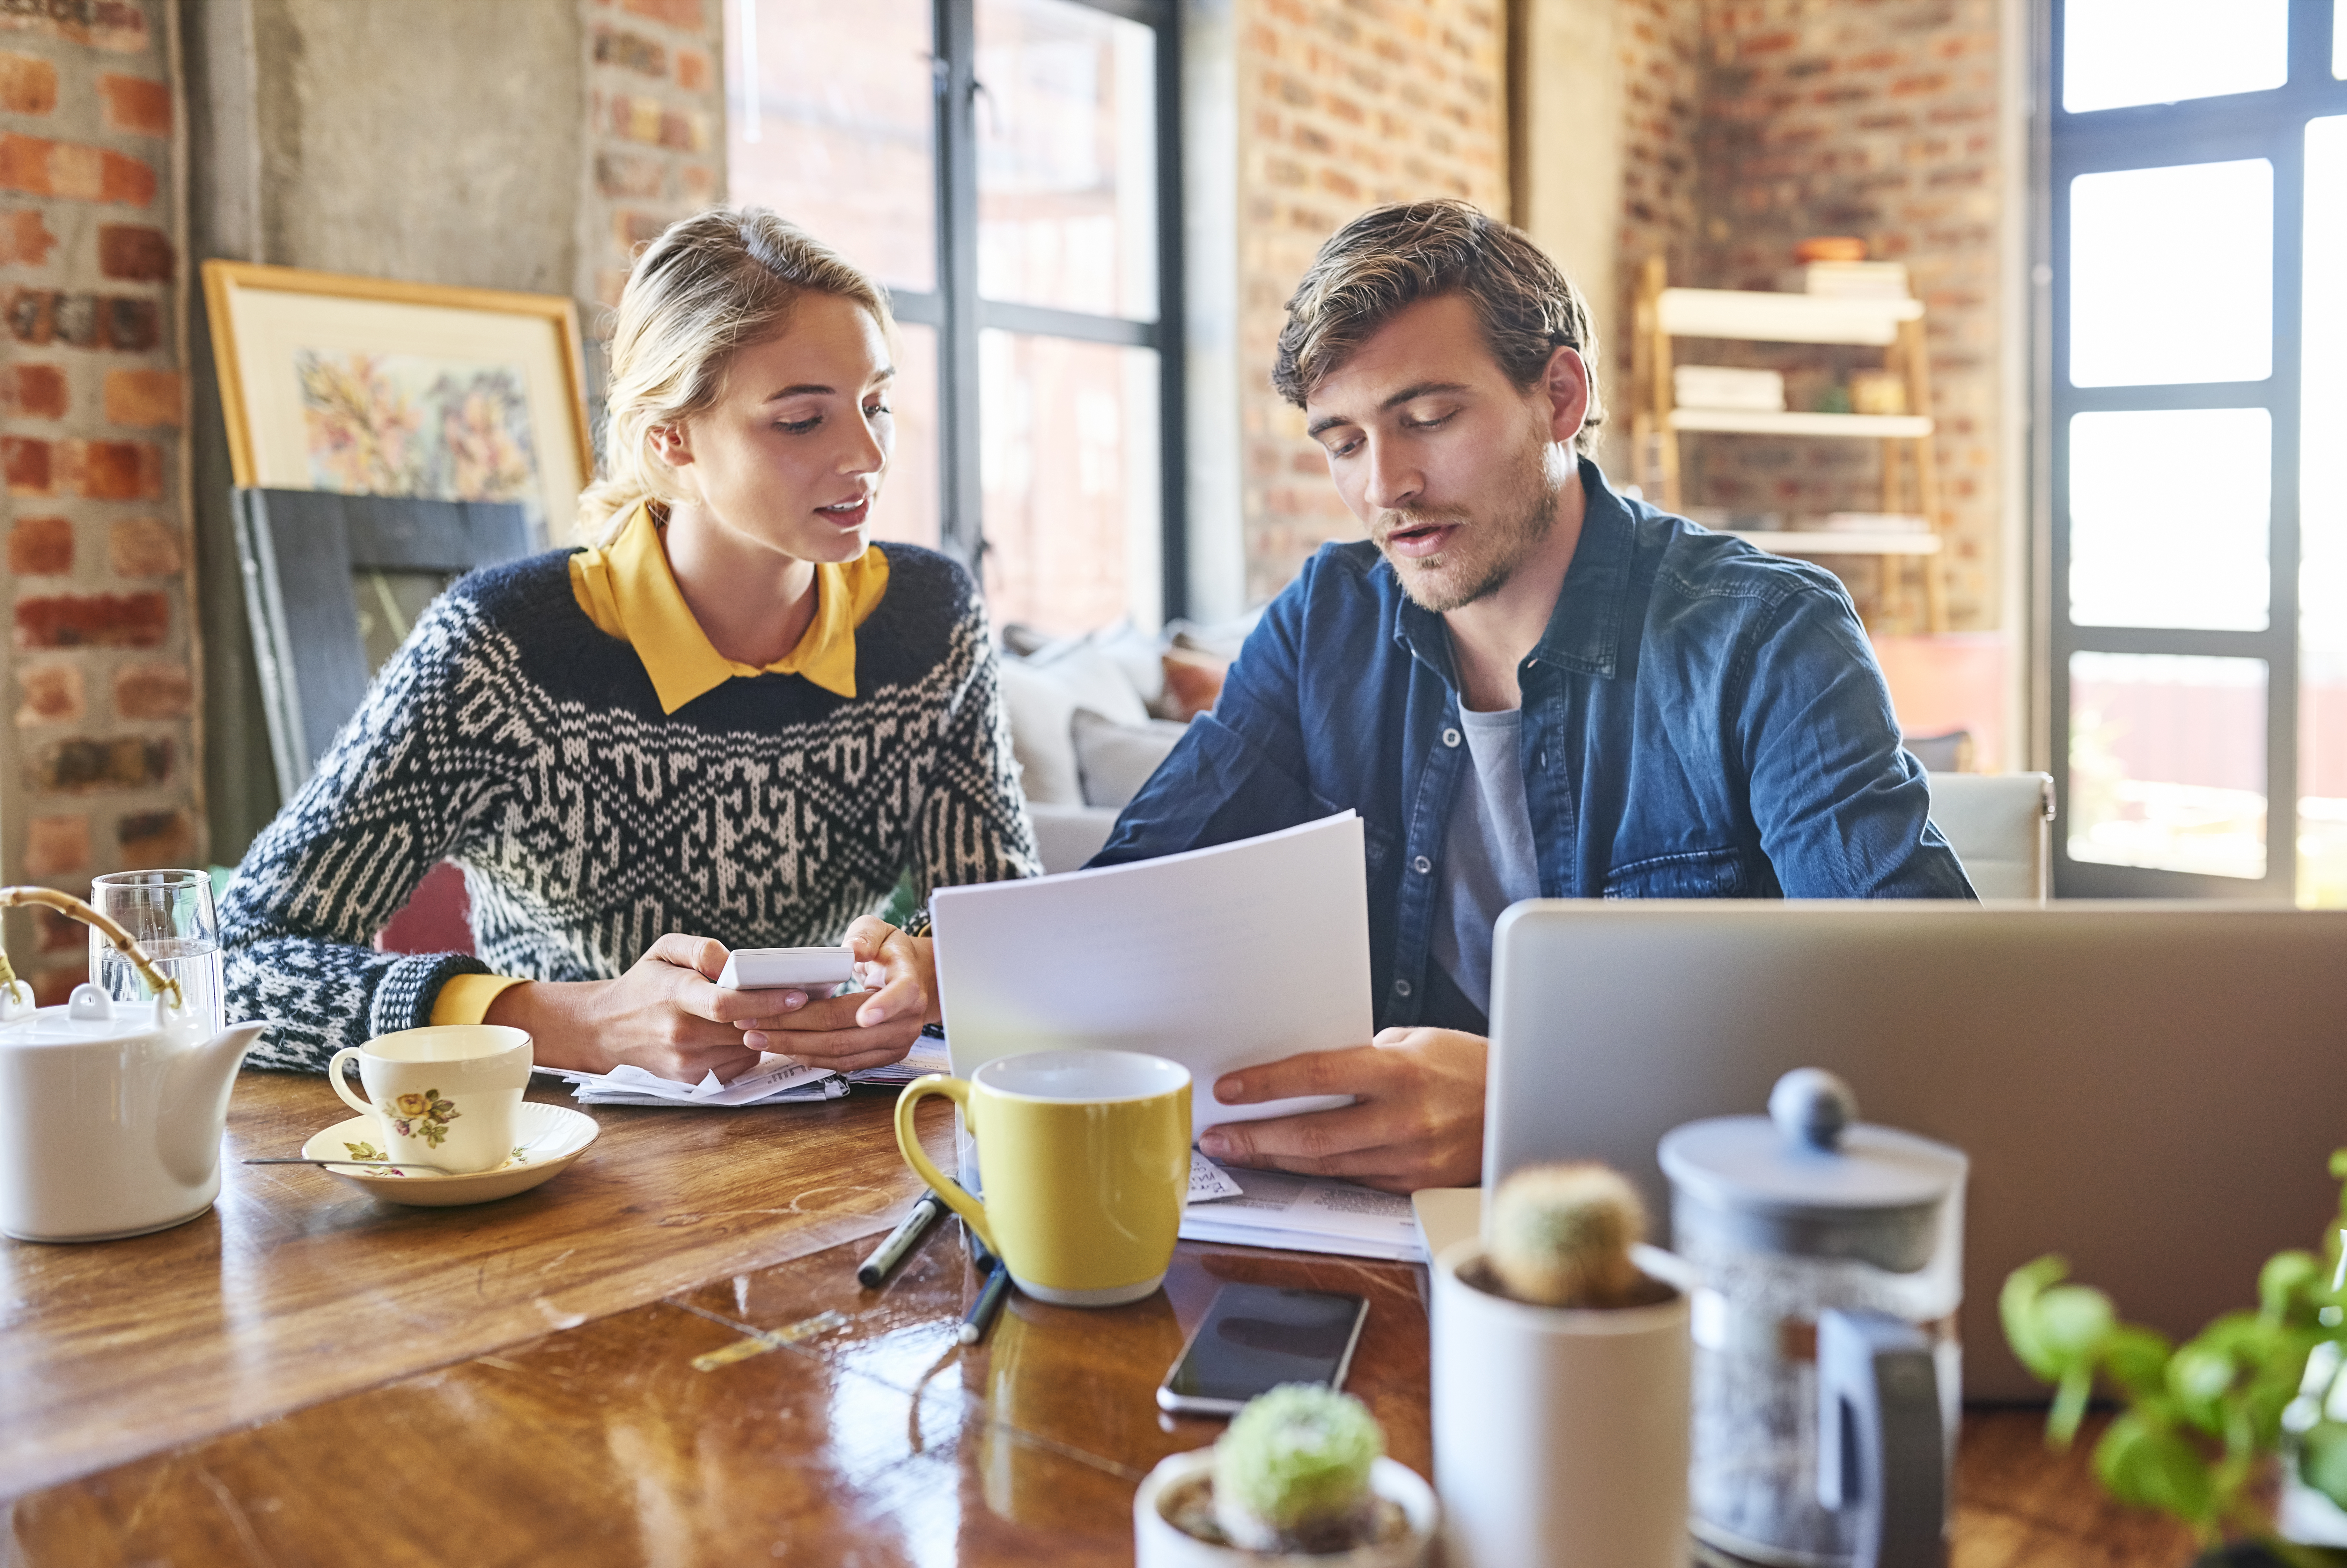 Young man and woman calculating home finance. Male and female partners are doing paperwork at table. They are wearing casuals at home.